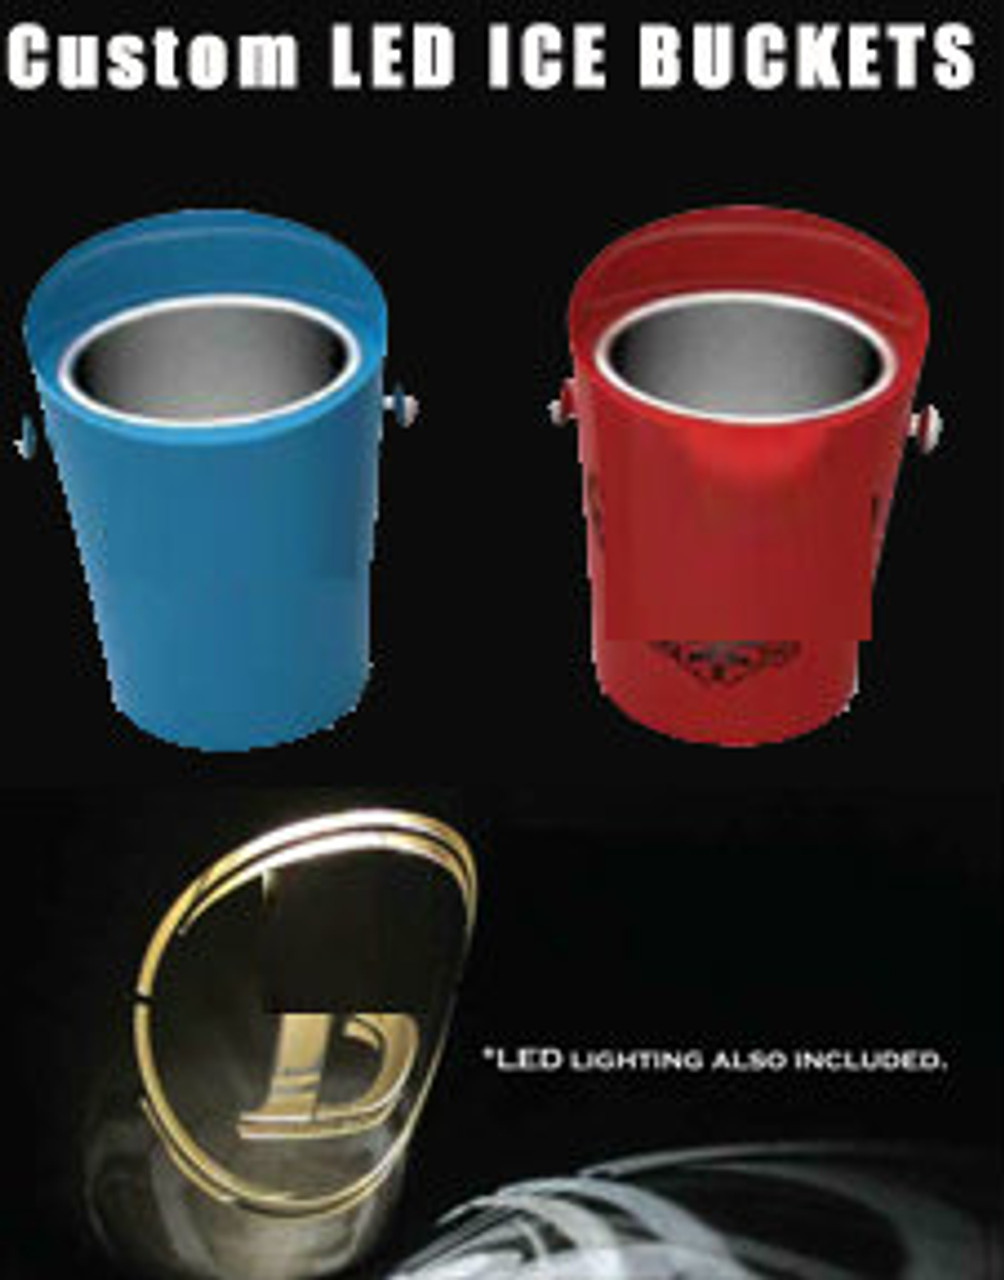 custom, led, branded, high quality, vip, Ice Buckets,logo, bottle service, ICE, Bucket, Champagne,